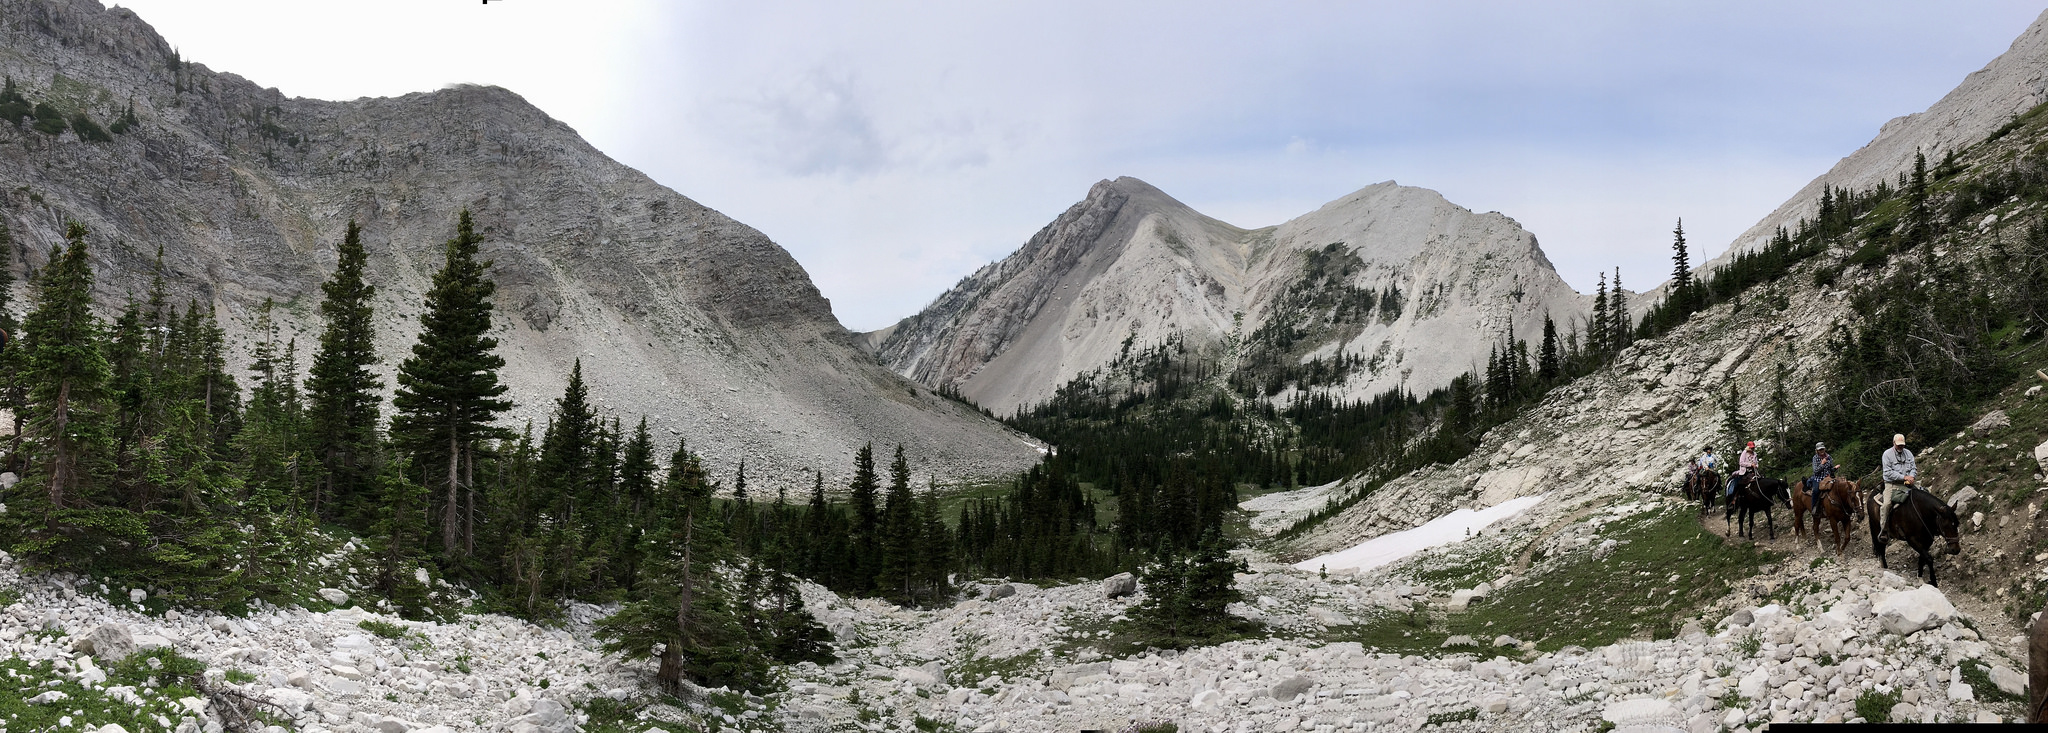 Riding towards Headquarters Pass in the Bob Marshall Wilderness